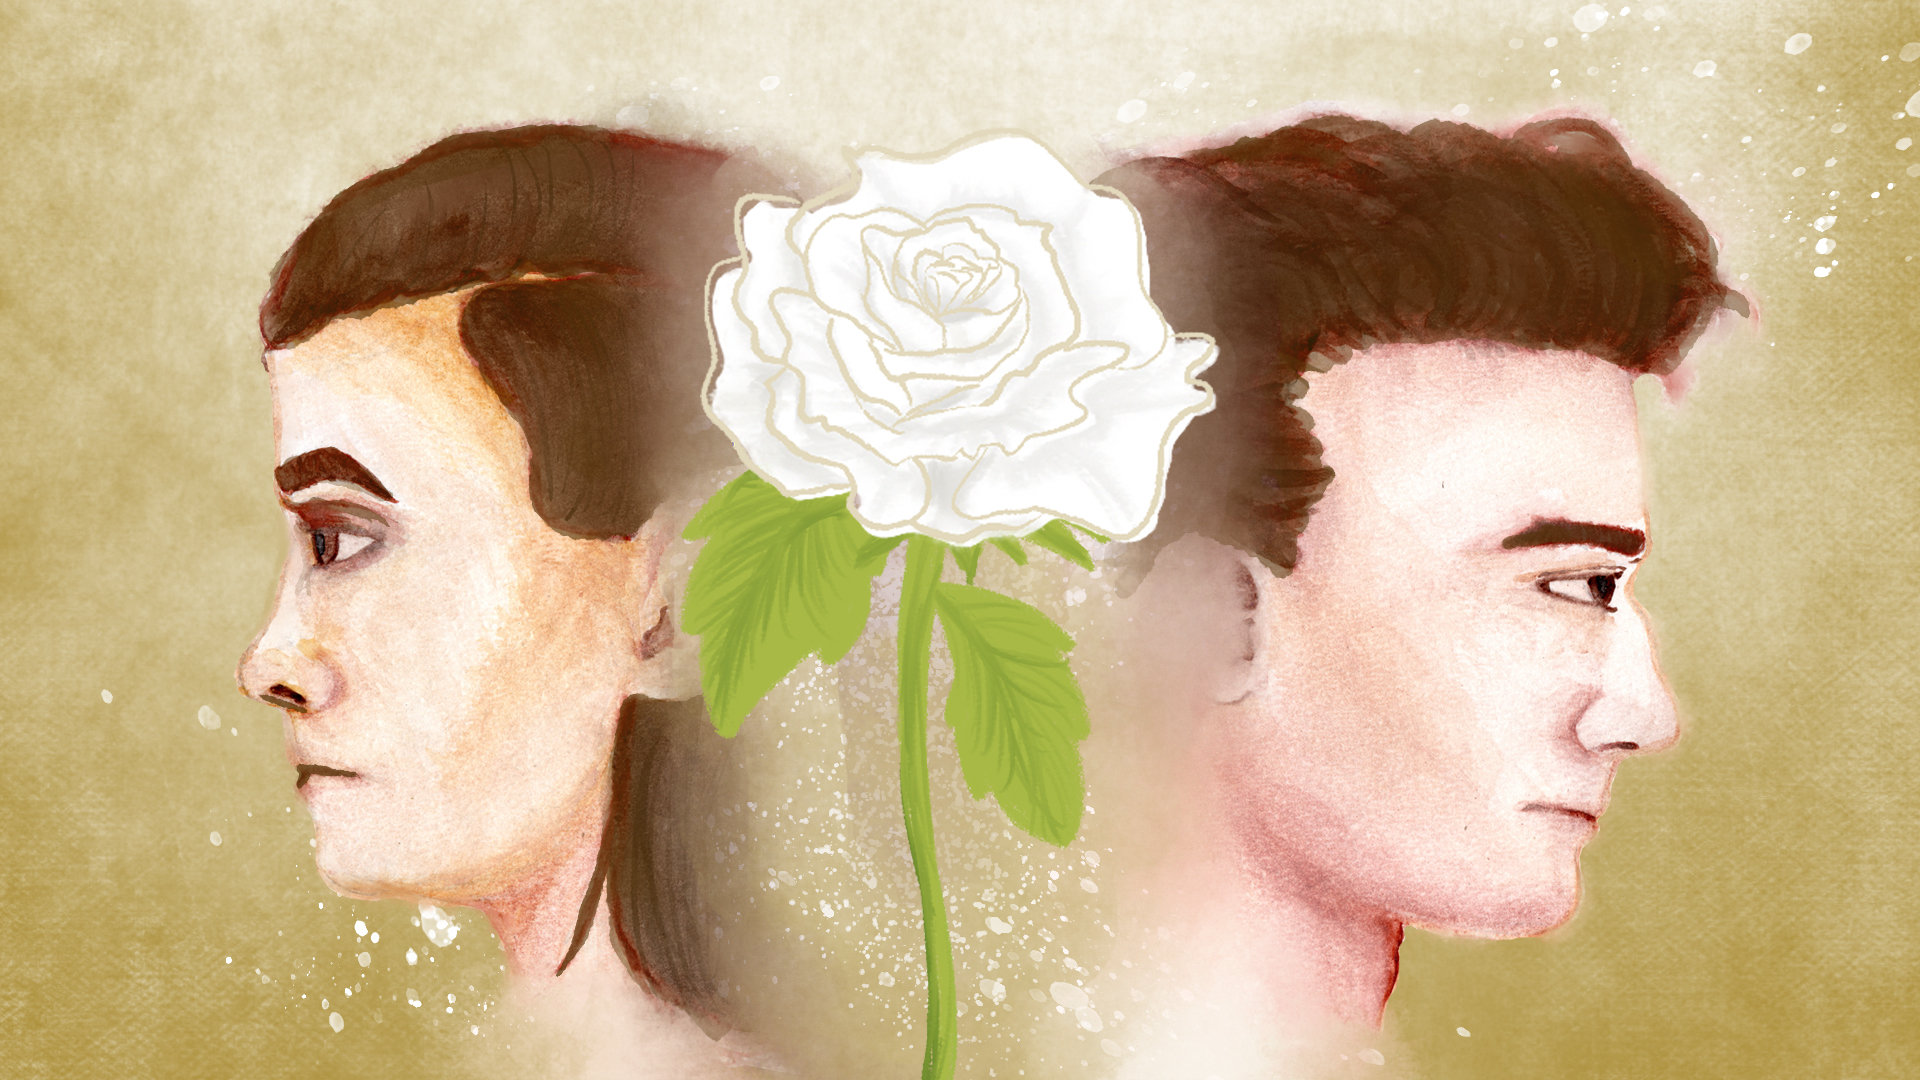 Conscience, Stories, and Hope: Hans and Sophie Scholl's White Rose